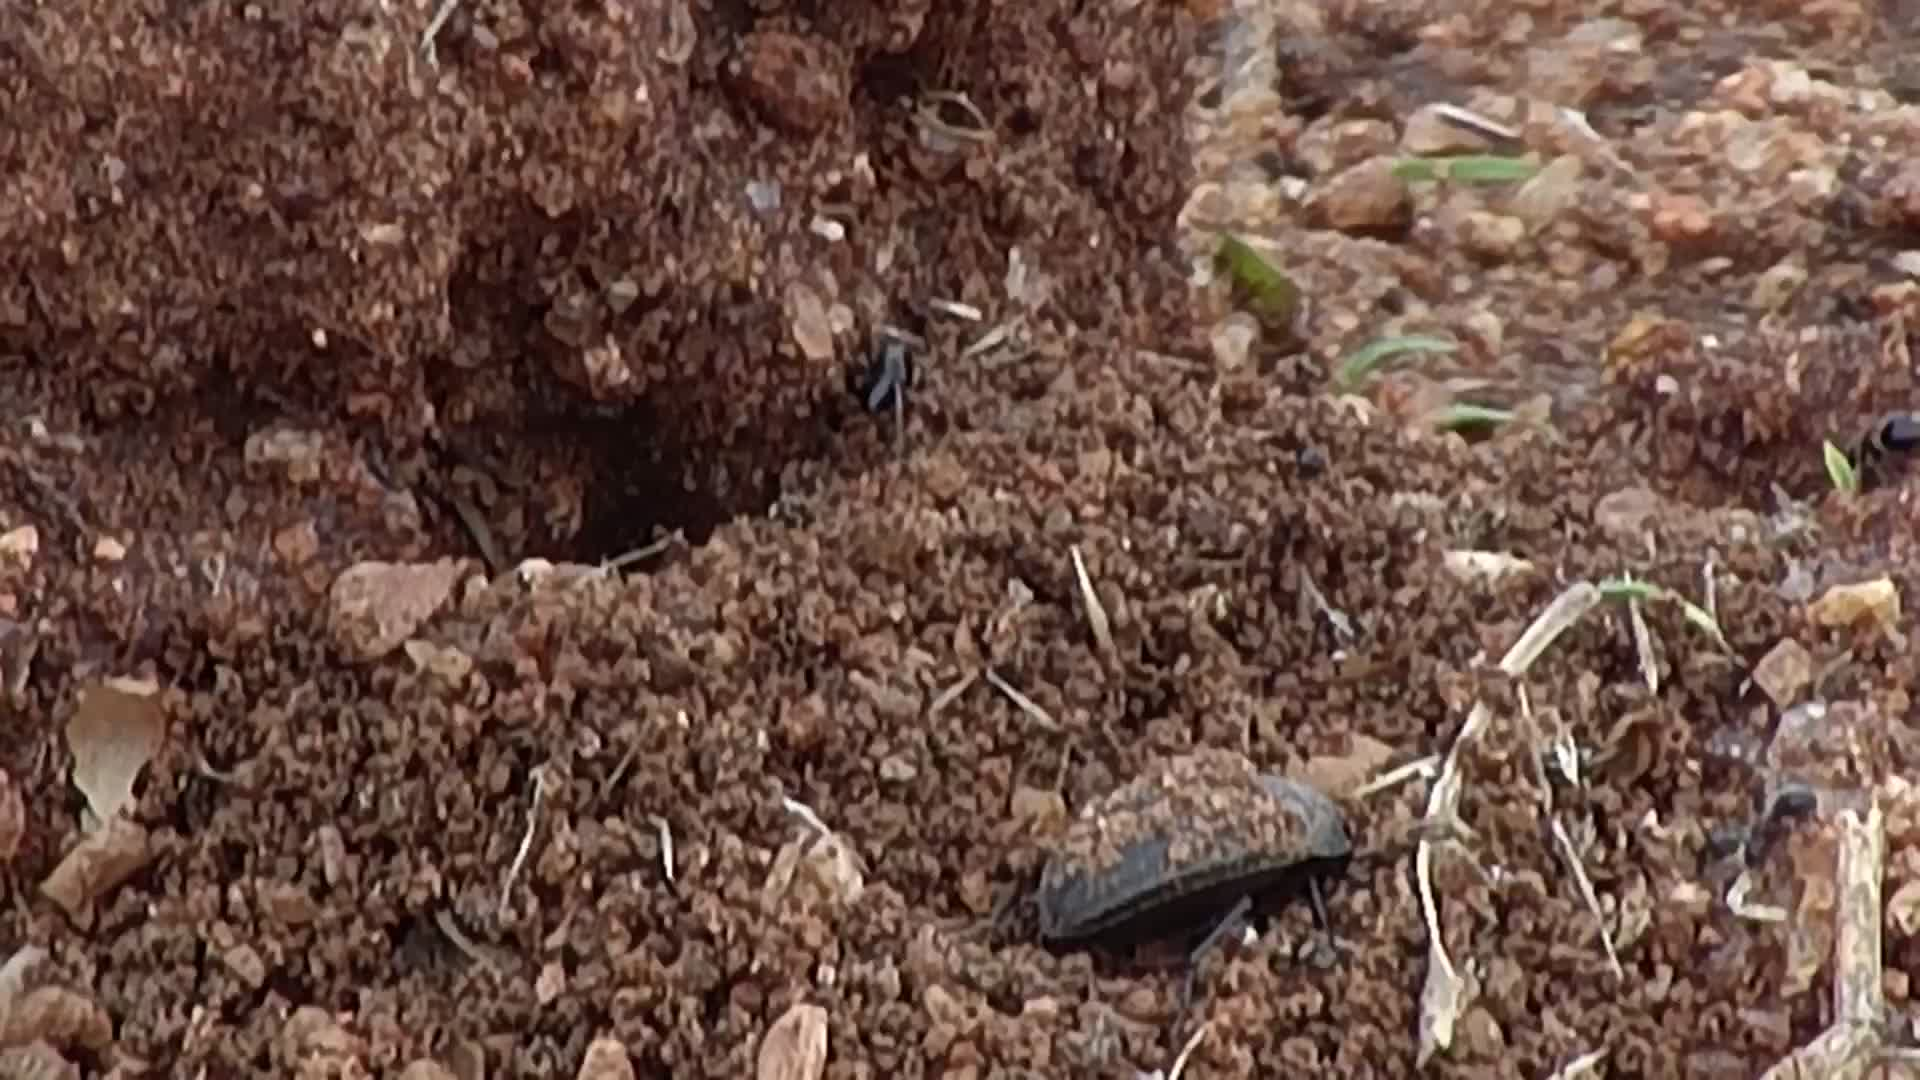 VIDEO: Ants doing some remodeling as a beetle watches on